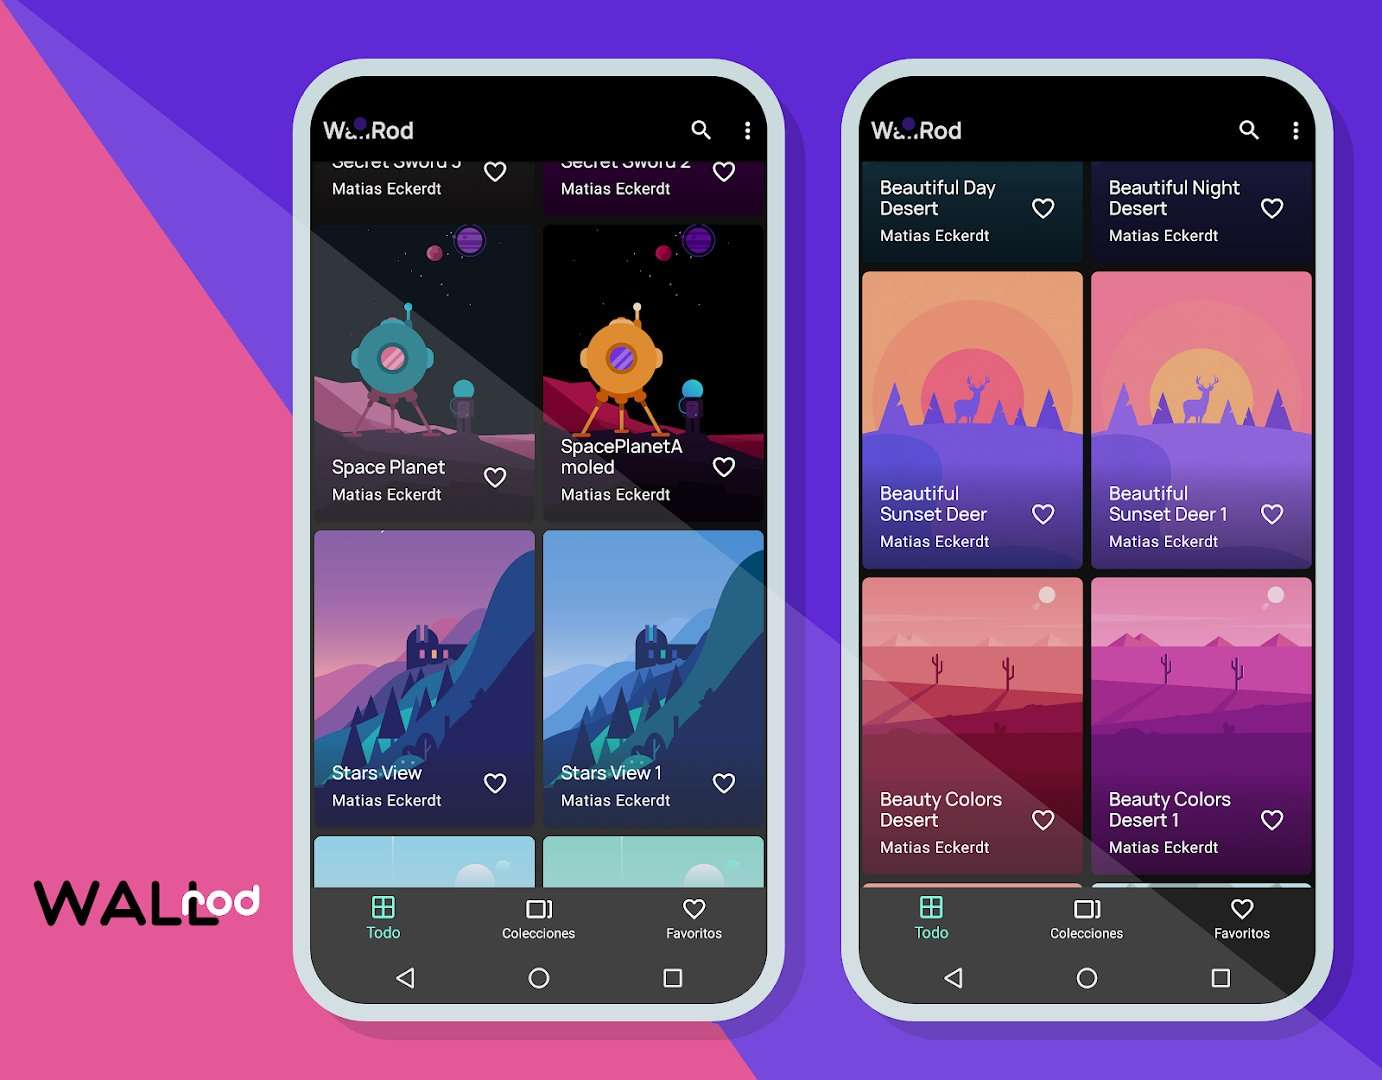 WallRod Wallpapers - Best Android Apps April 2020